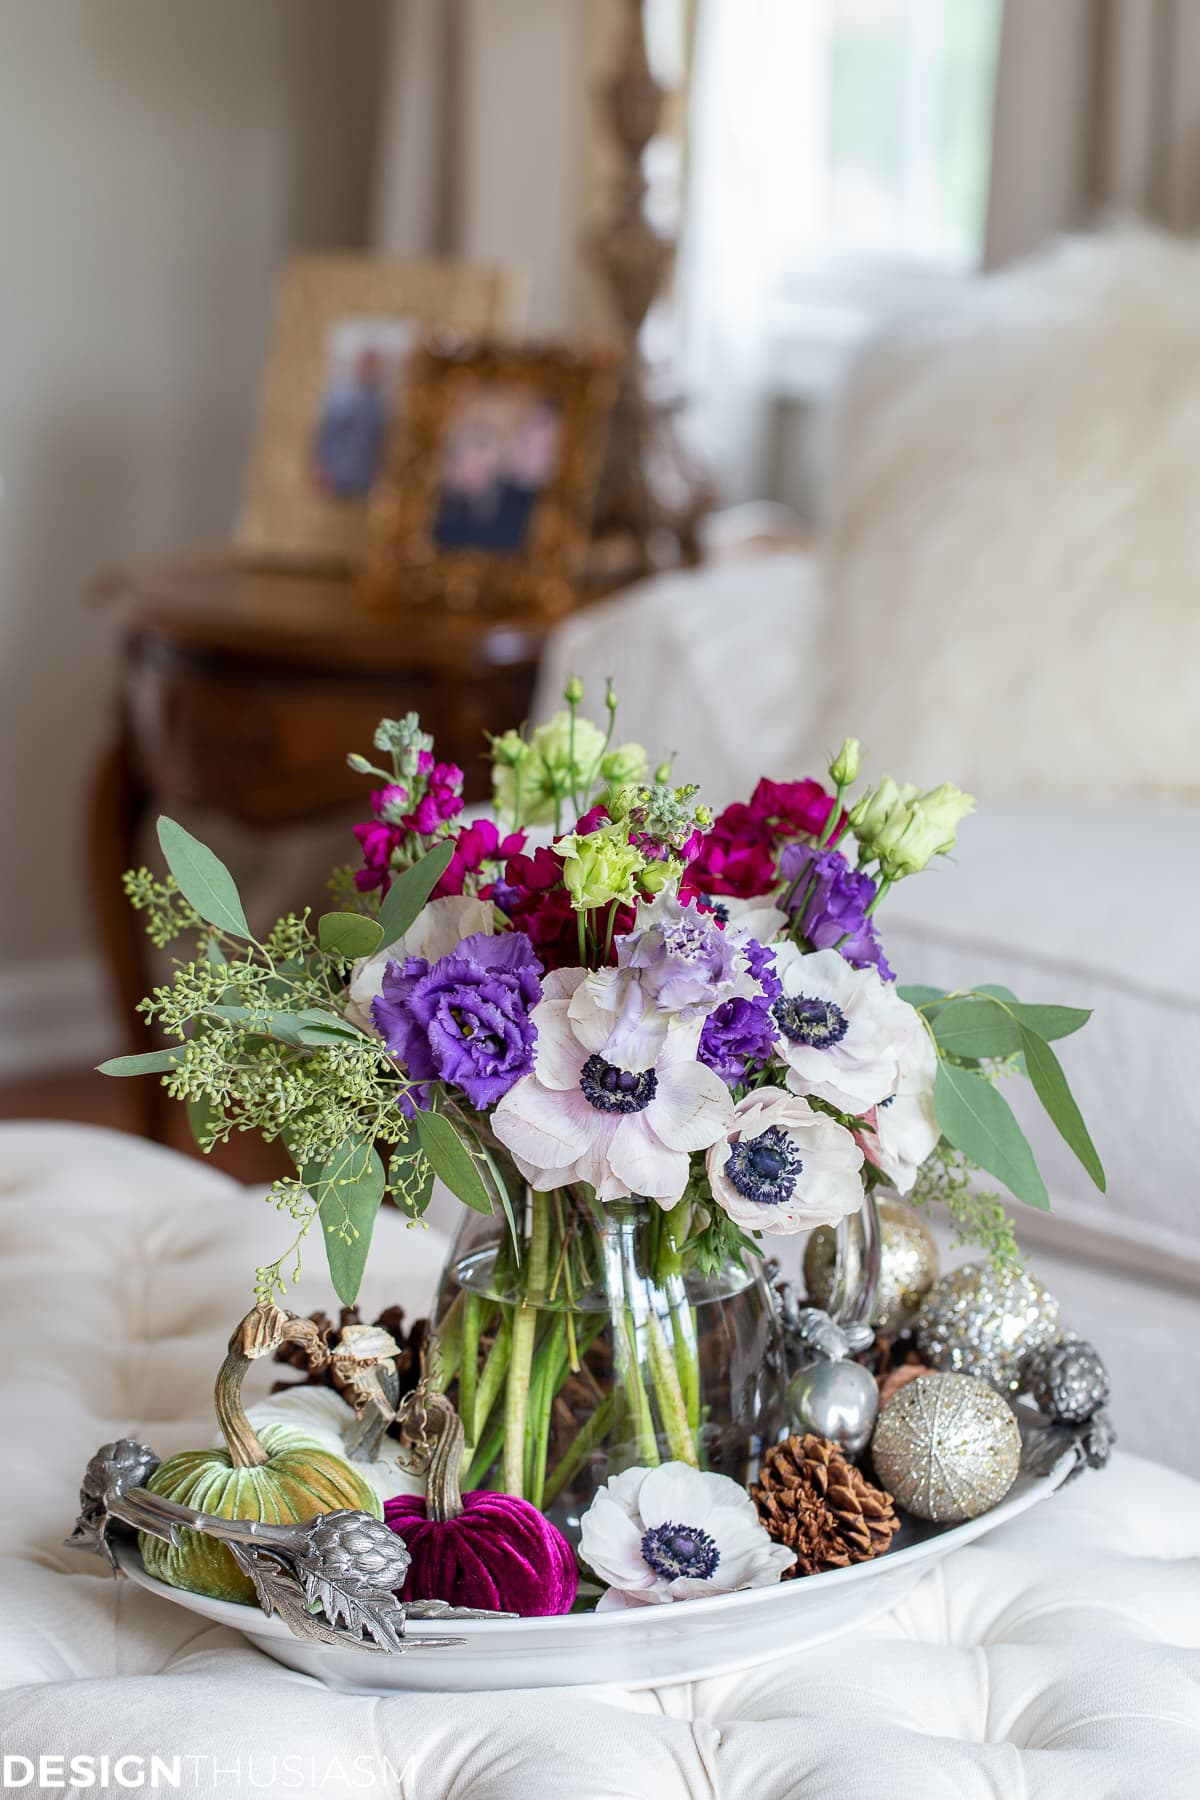 floral with seasonal decorations